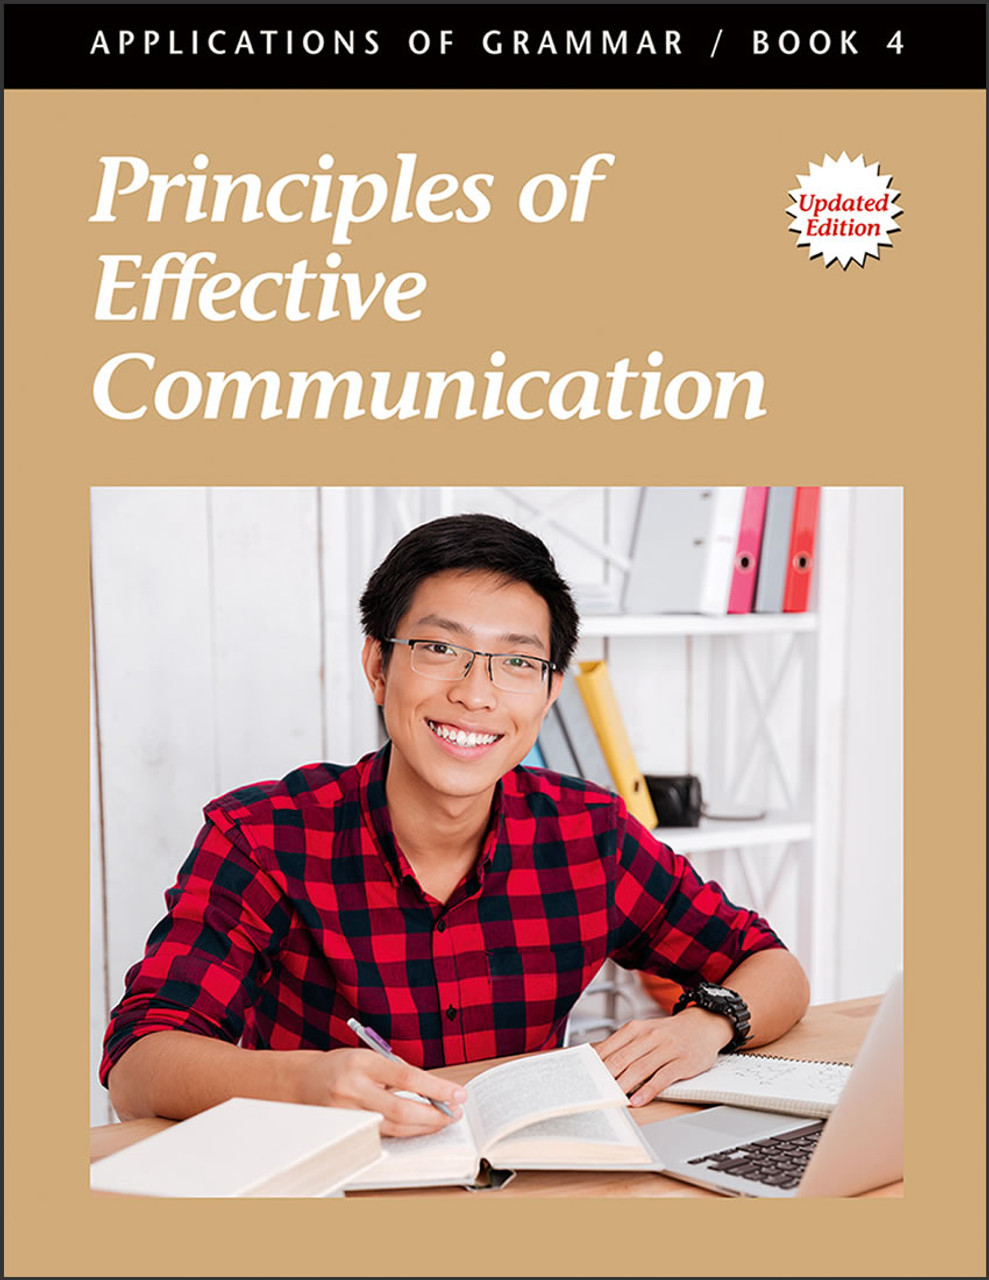 Applications of Grammar 4: Principles of Effective Communication, Updated edition